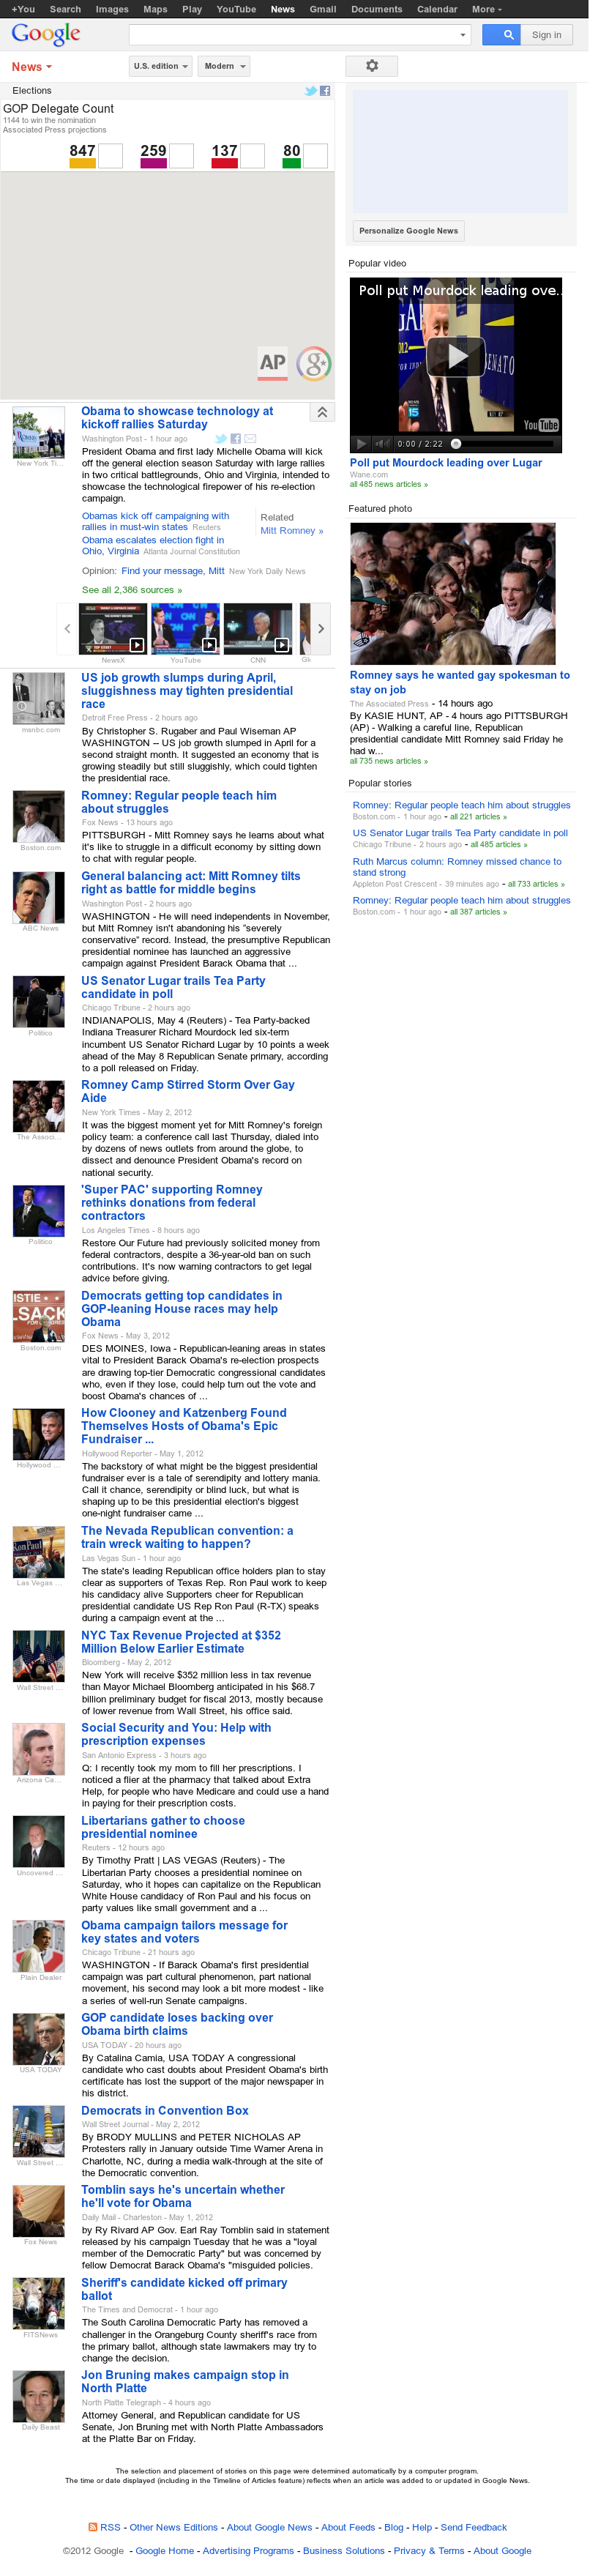 Google News: Elections at Saturday May 5, 2012, 10:06 a.m. UTC